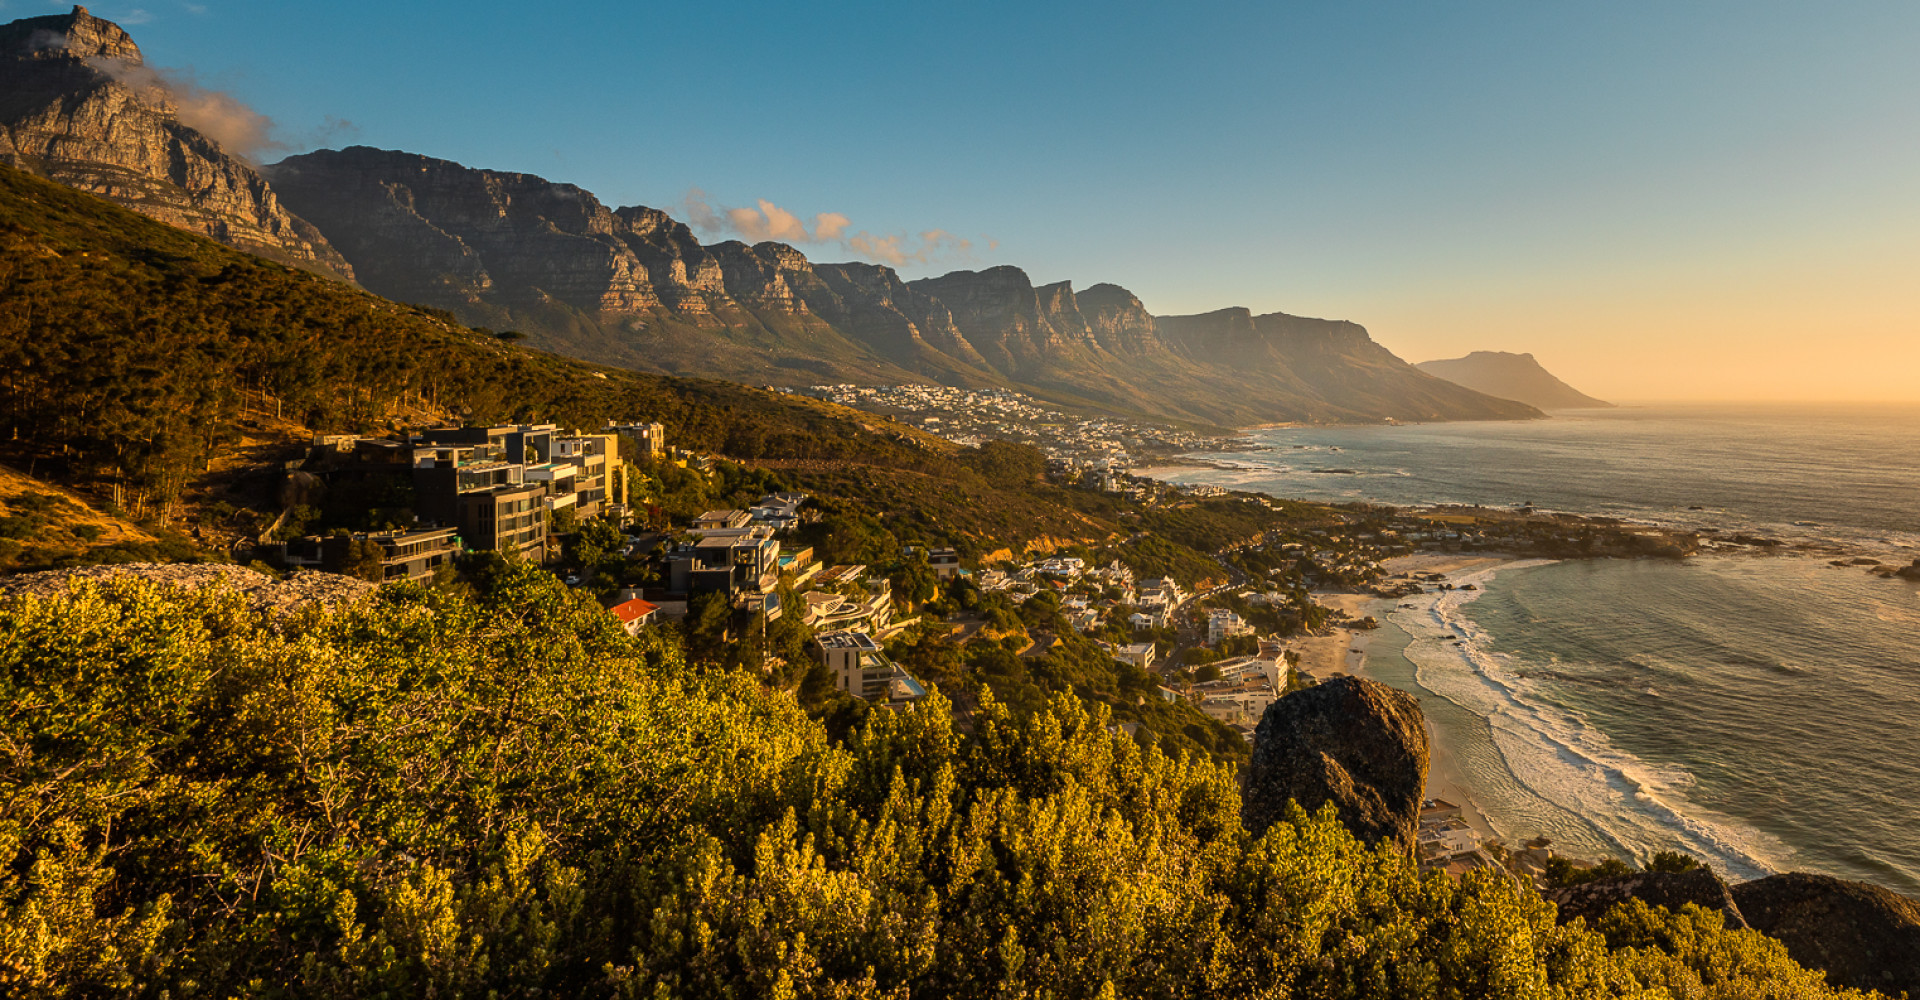 South Africa Travel: best places to visit, things to do